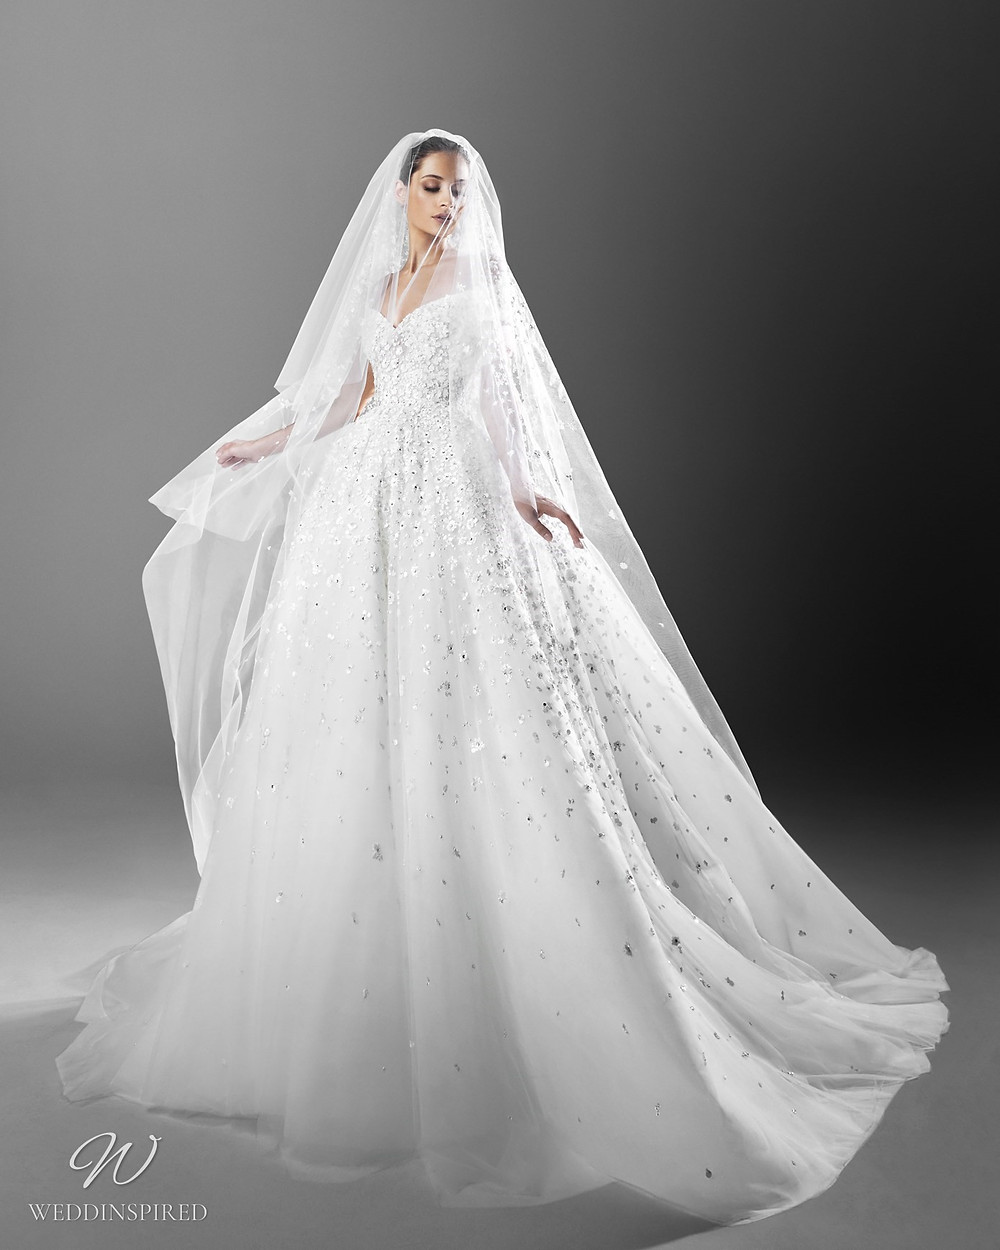 A Zuhair Murad ball gown off the shoulder princess wedding dress with crystals and a veil